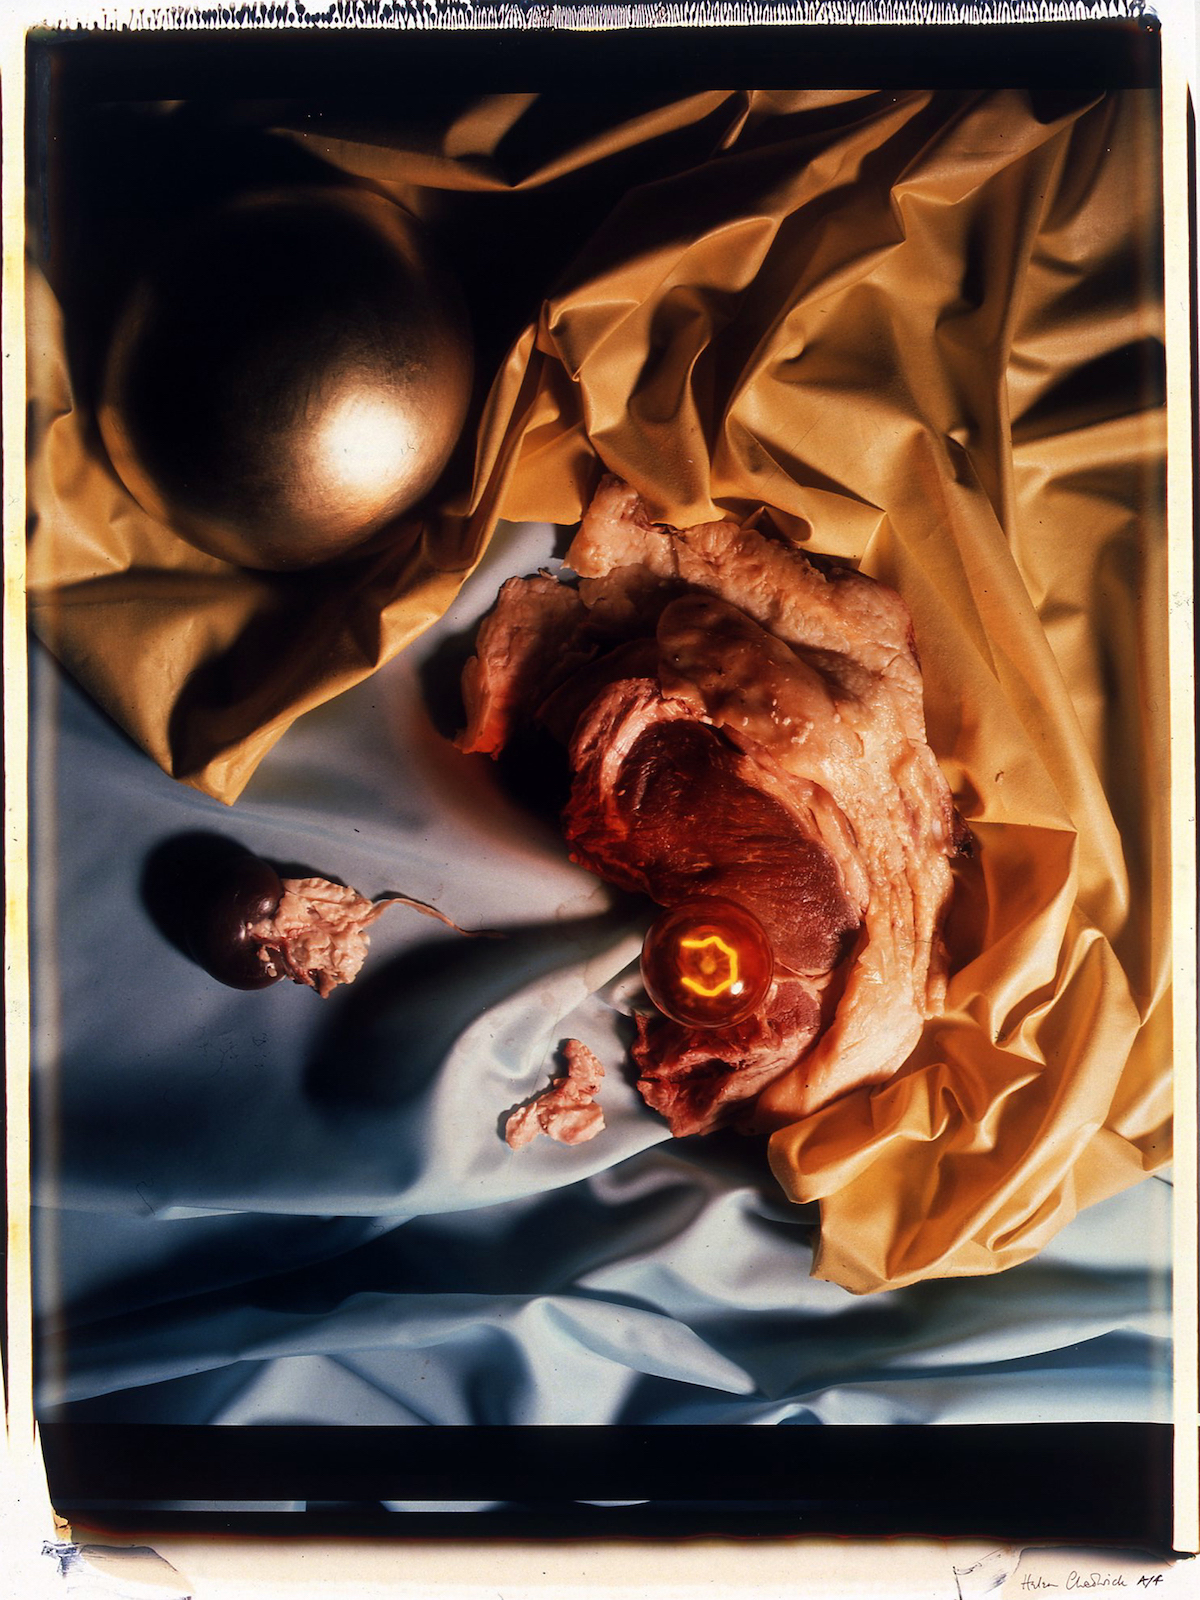 Helen Chadwick, Meat Abstract No. 8, Gold Ball Steak, 1989. Copyright The Artist. Courtesy of Richard Saltoun Gallery.